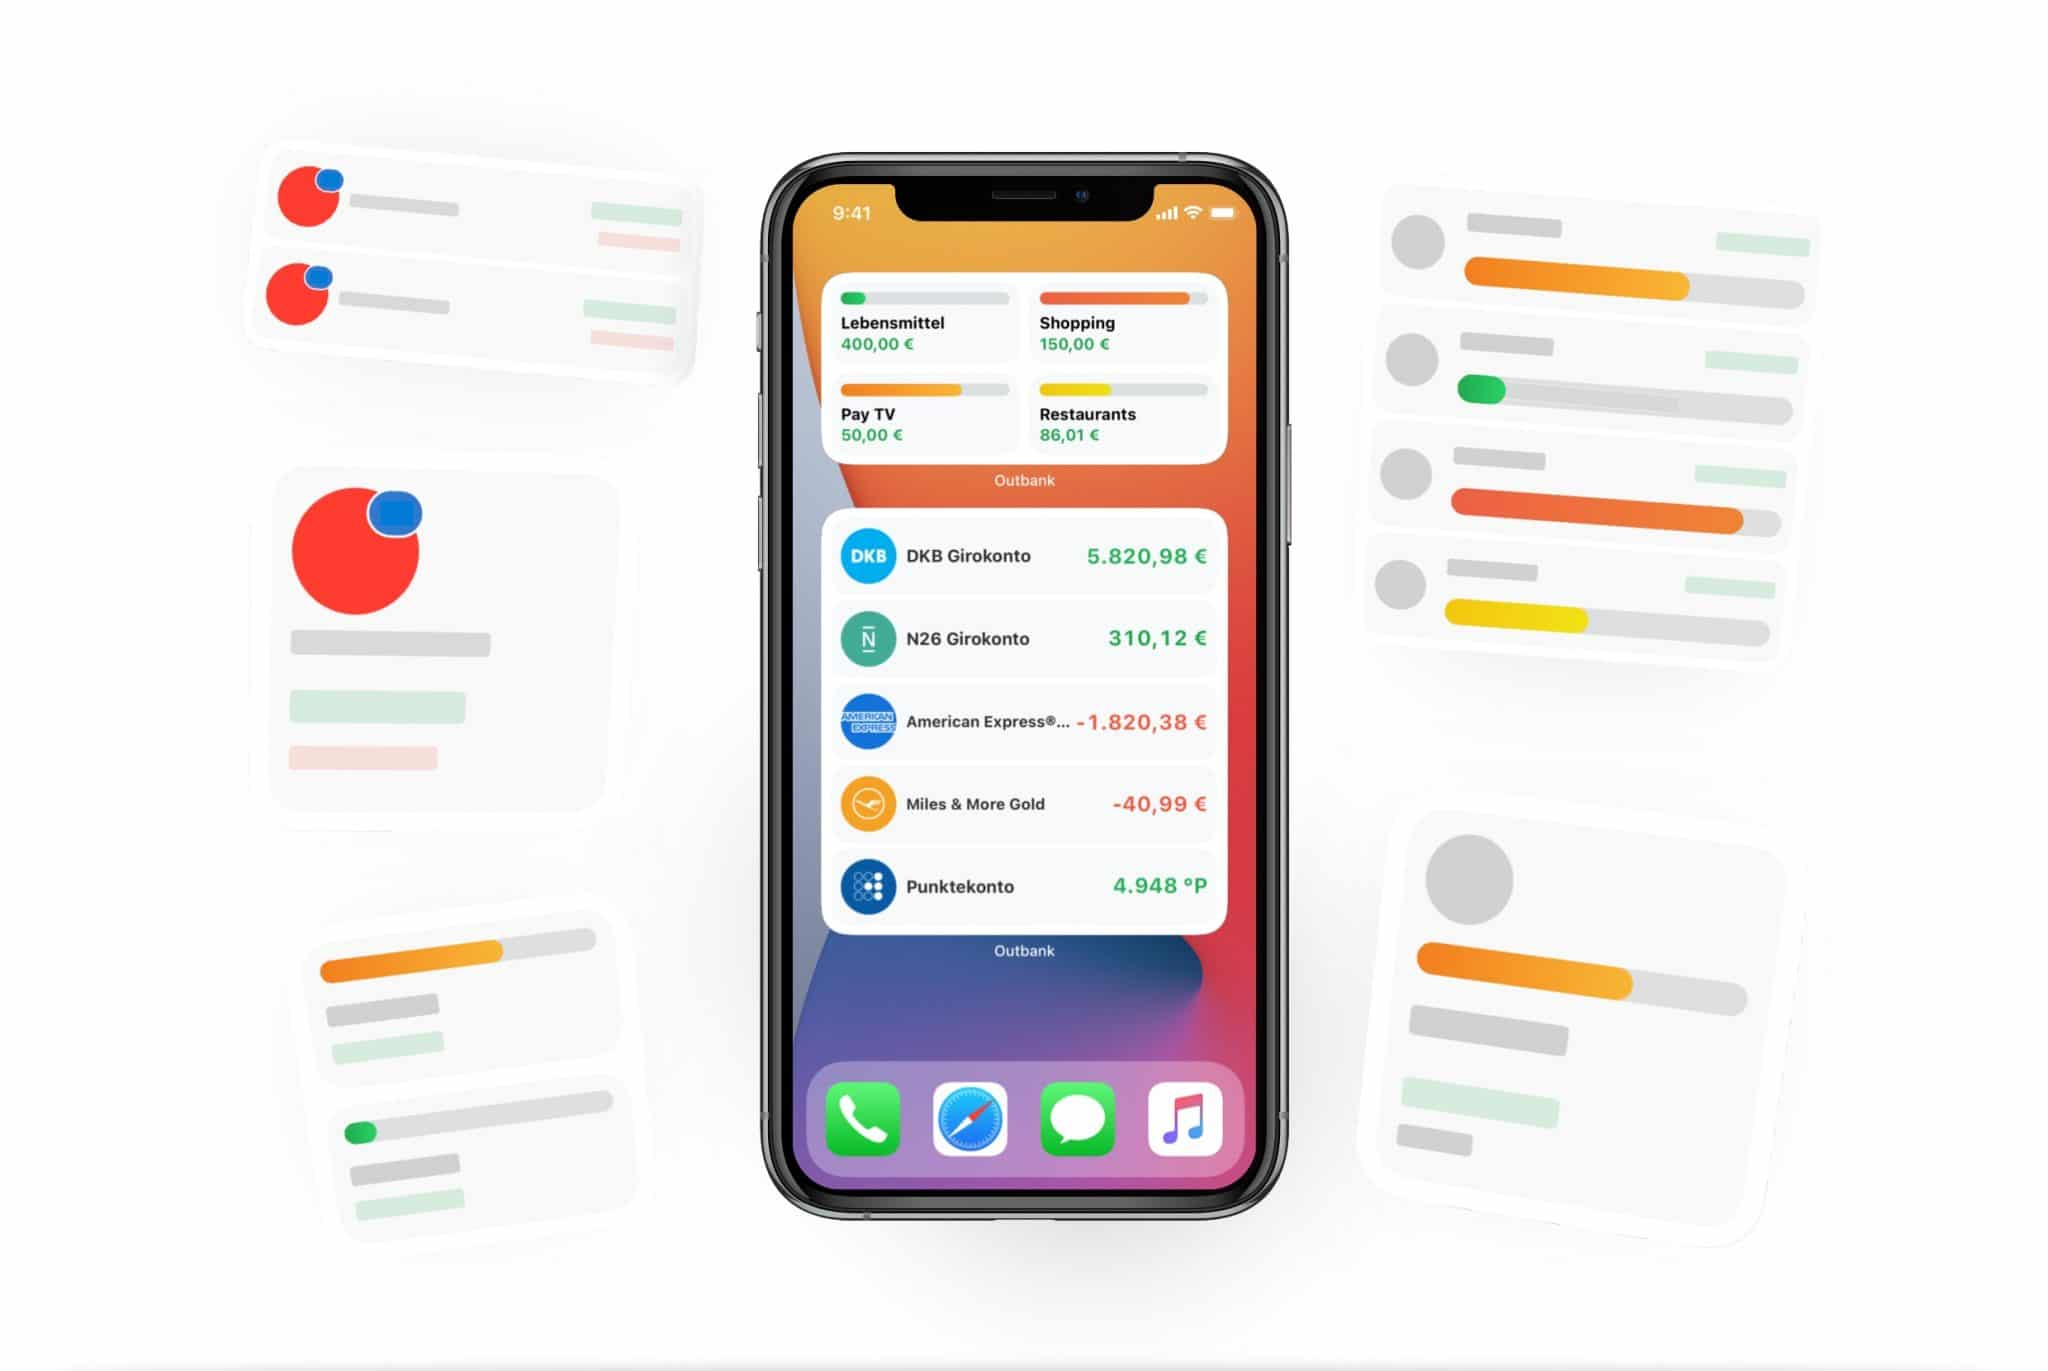 iOS 14 Widgets Outbank Salden Budgets